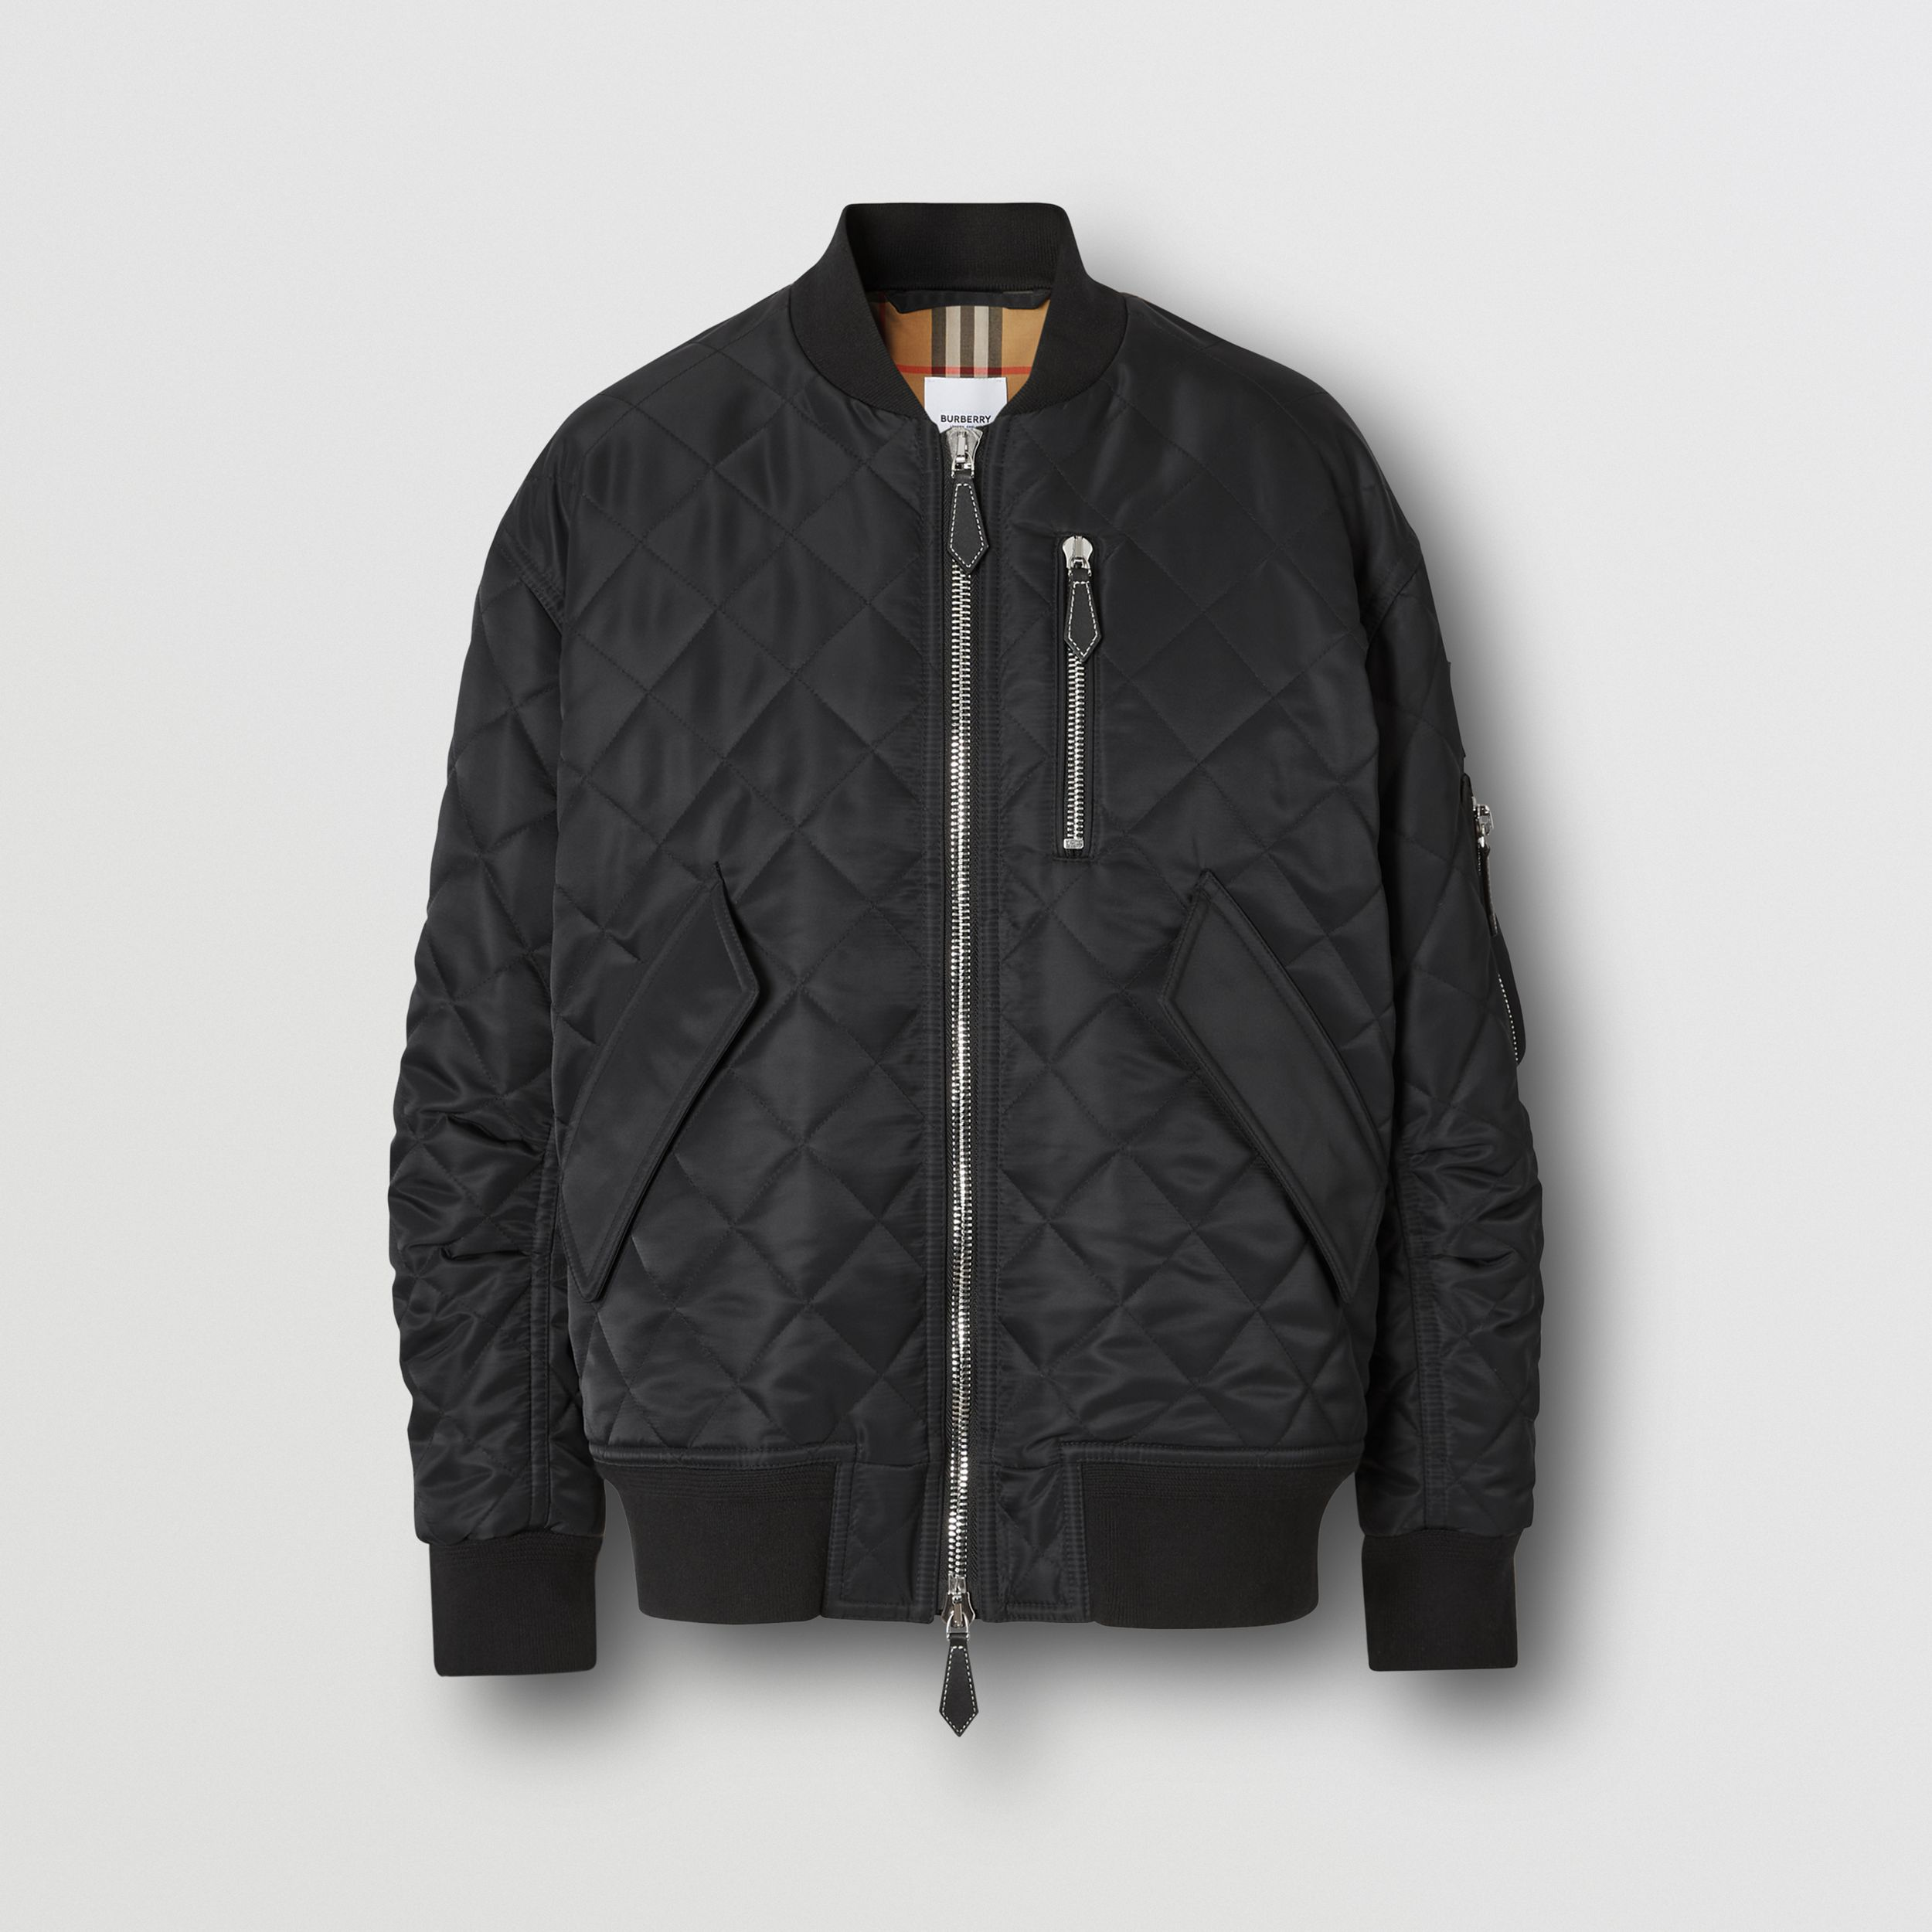 Diamond Quilted Nylon and Cotton Bomber Jacket in Black | Burberry - 4